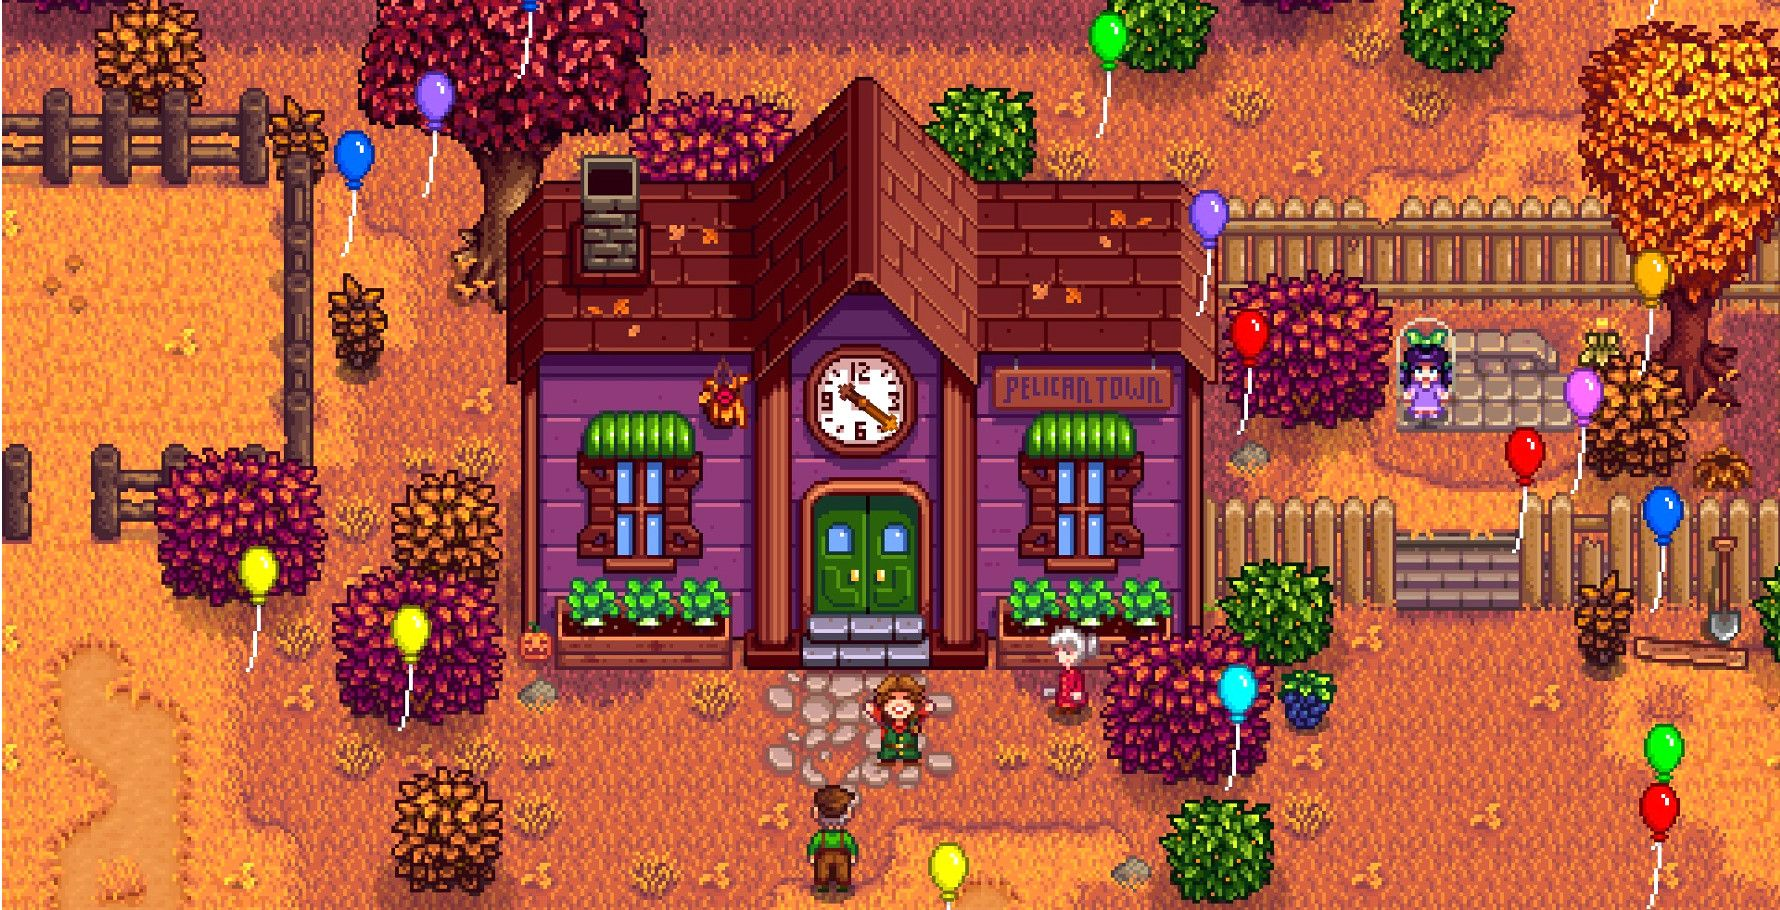 10 Things Fans Don't Know They Can Do in Stardew Valley